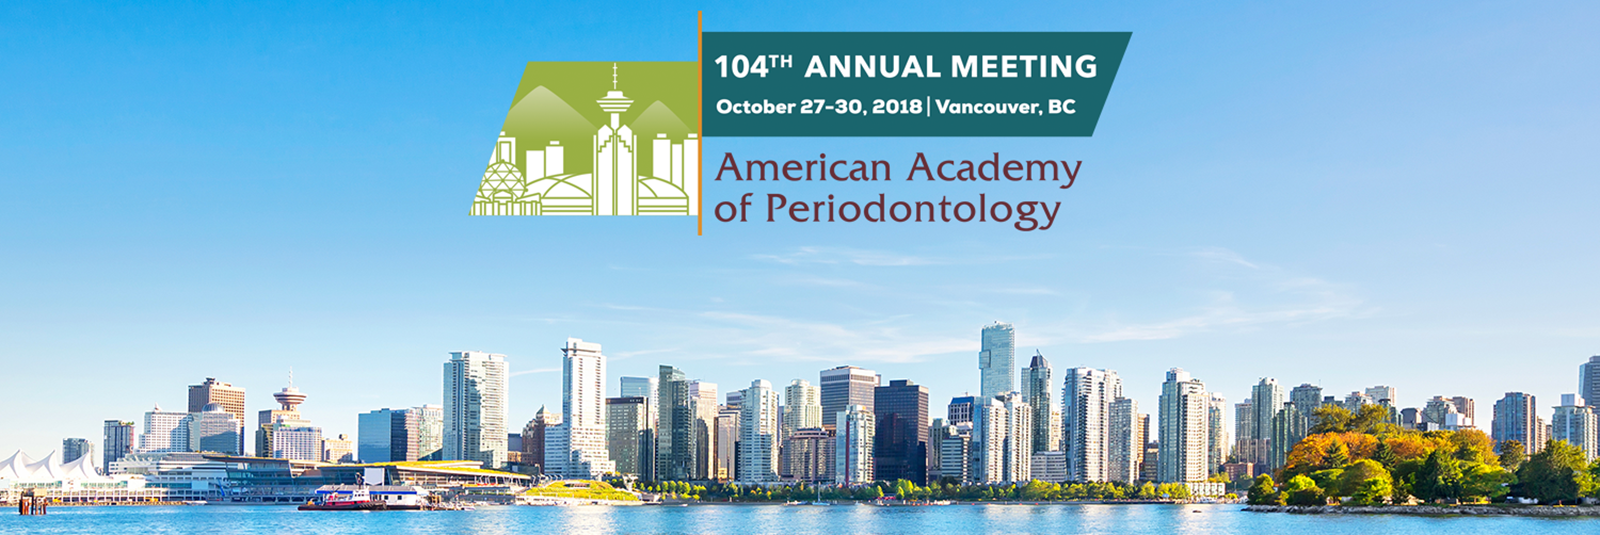 AAP American Academy of Periodontology 2018 Meeting